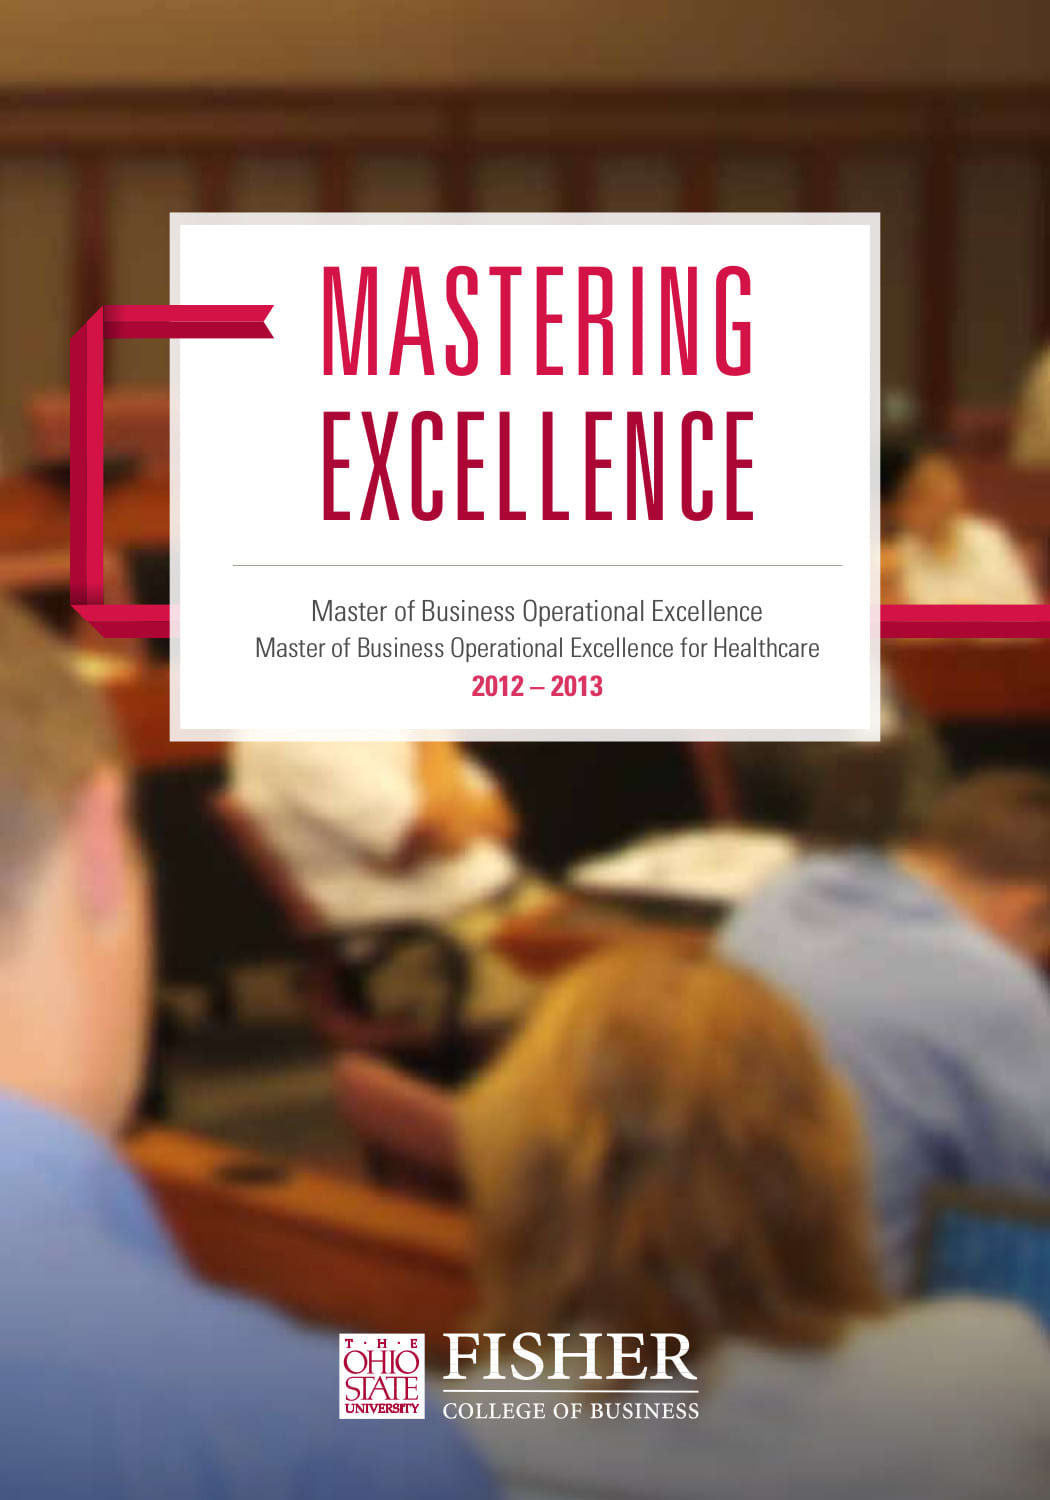 Mastering Excellence